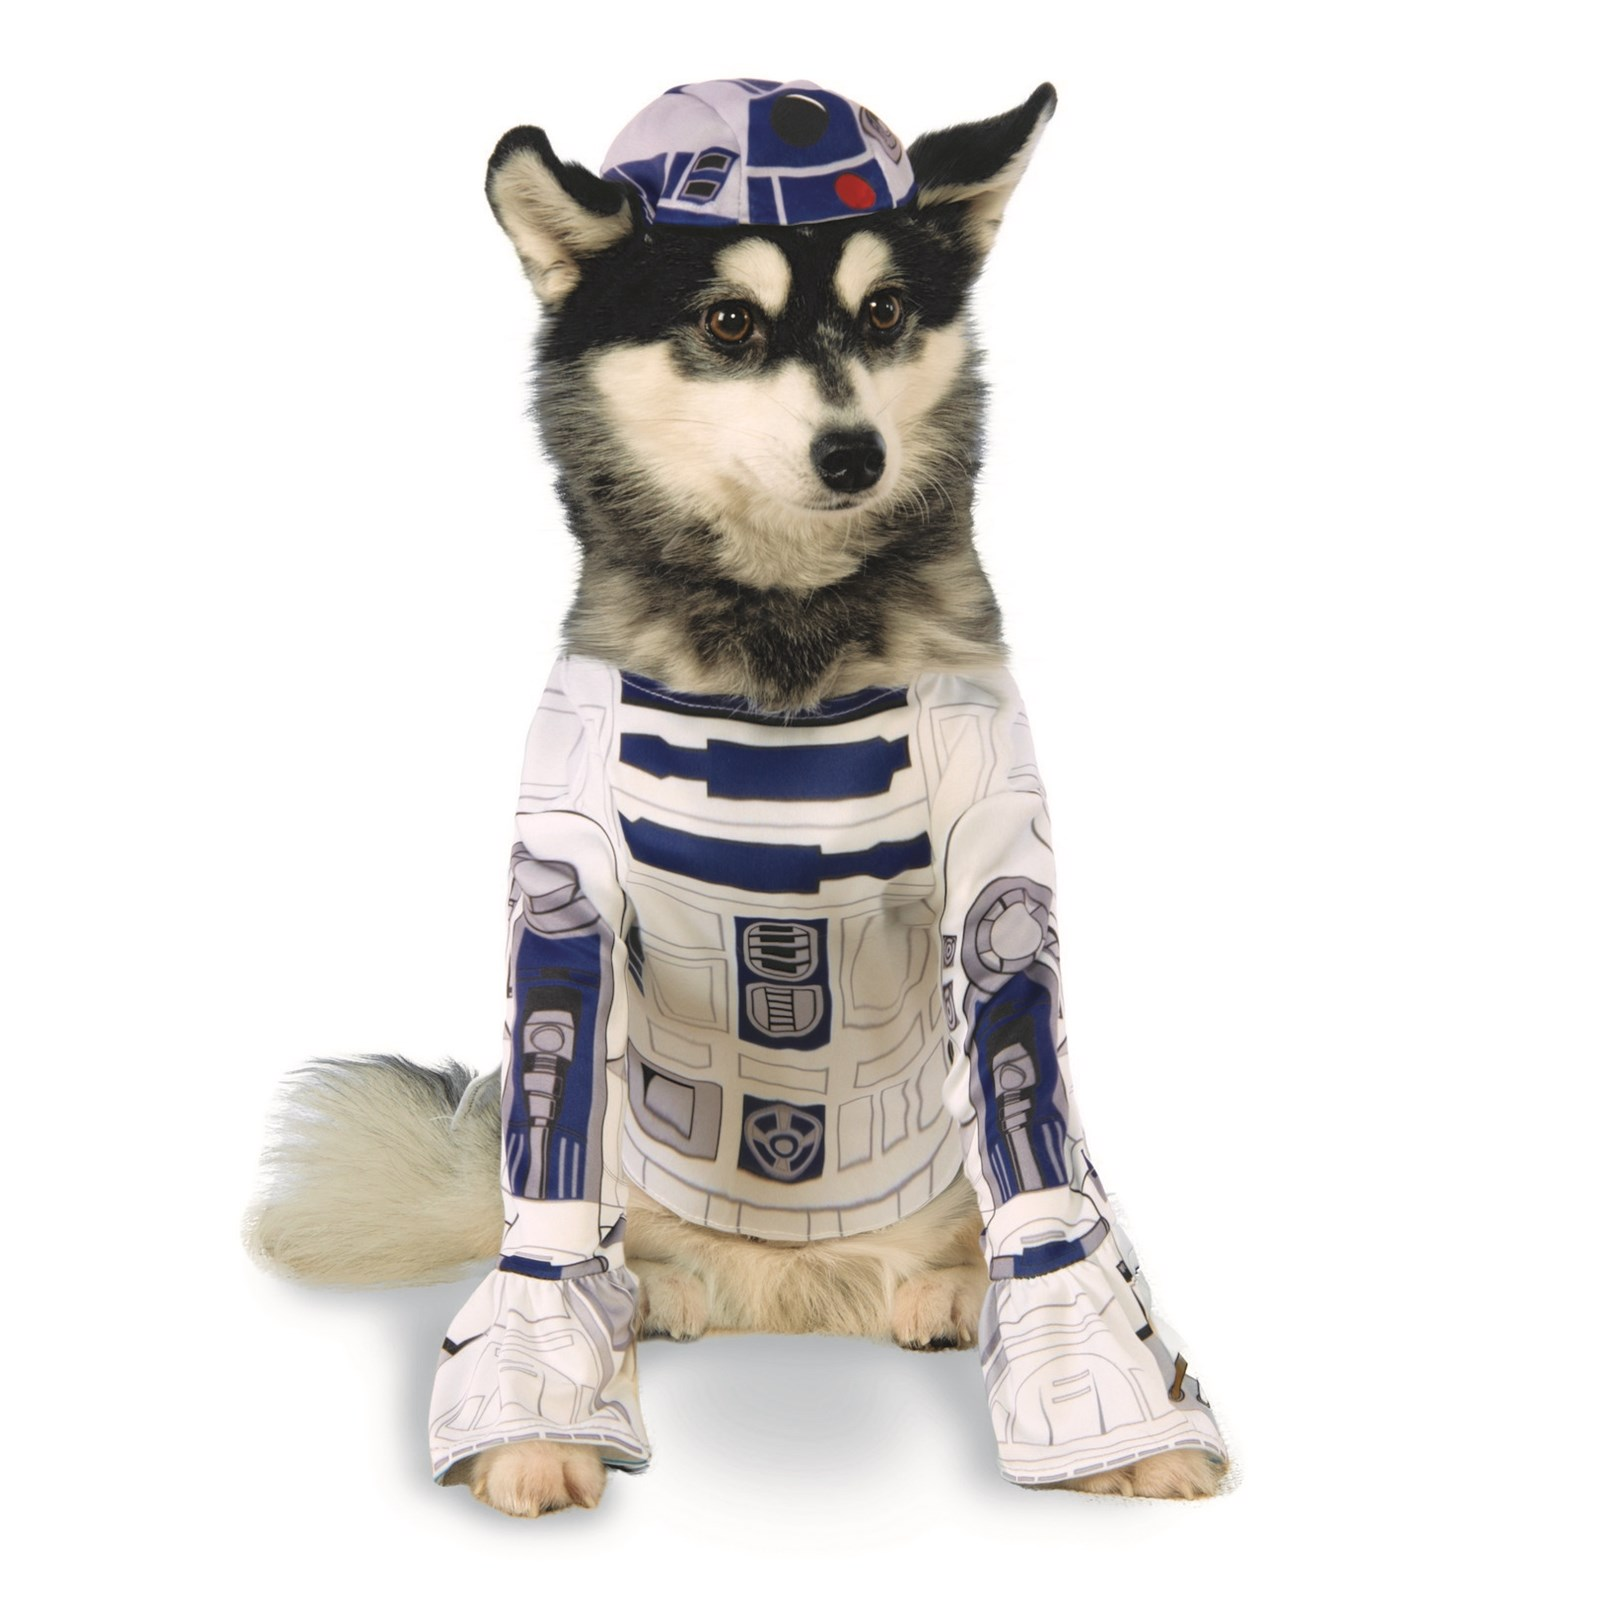 Star Wars Pet R2-D2 Pet Costume Costume